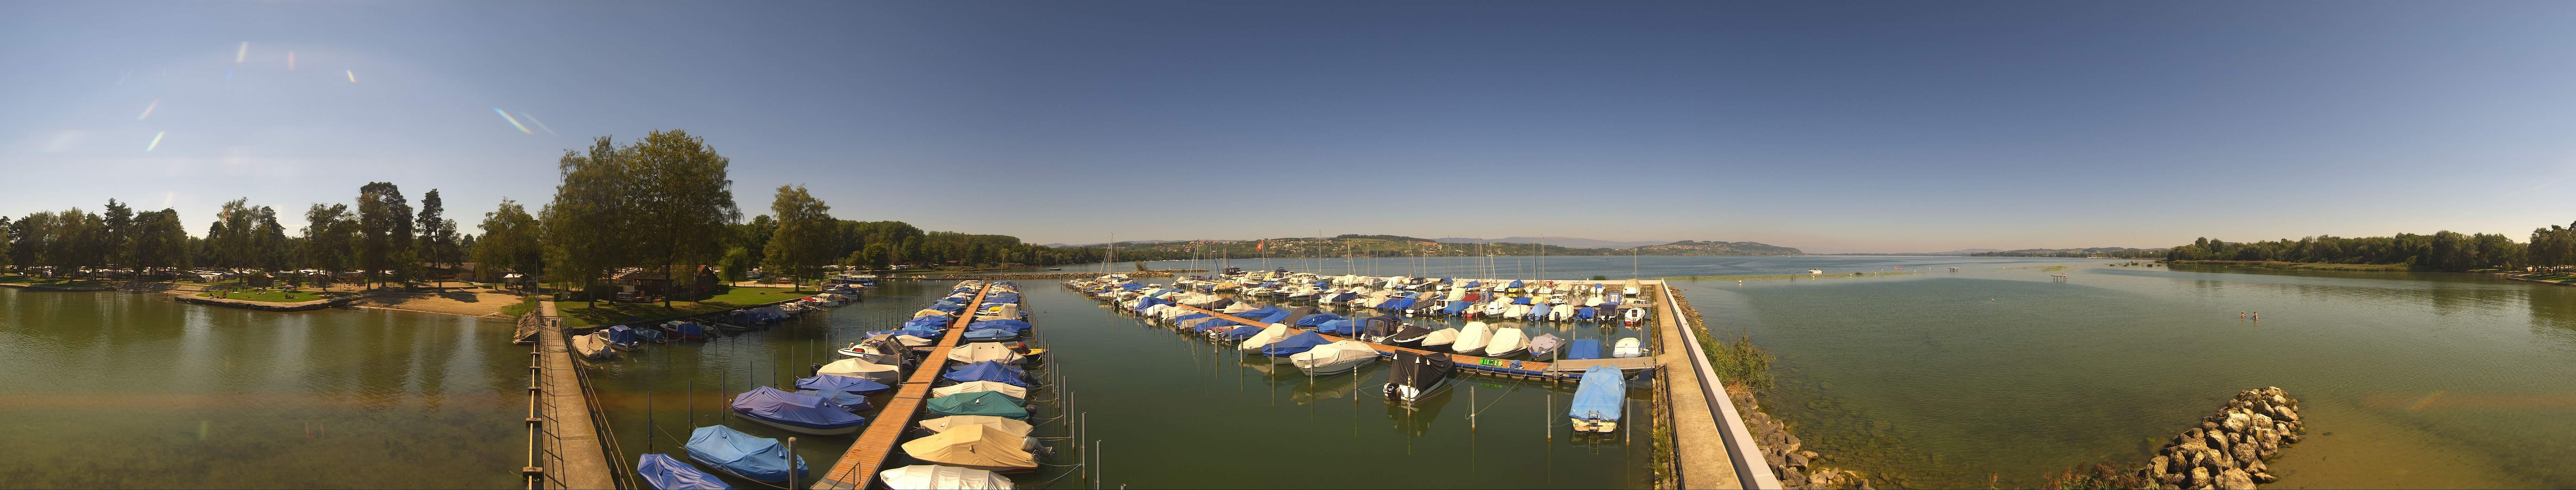 Webcam  Avenches Camping Plage